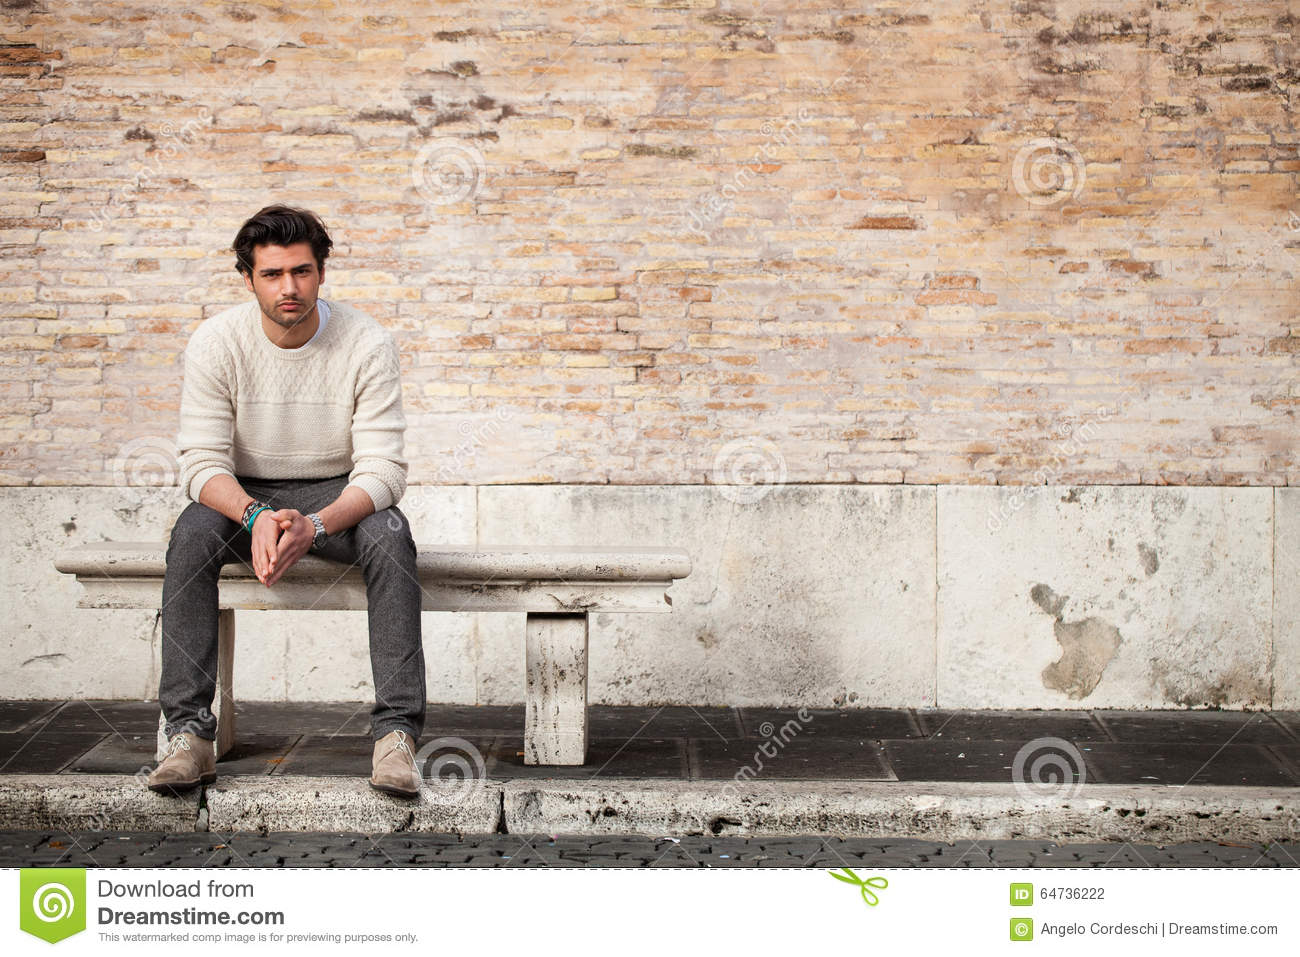 Bench Stock Photography Cartoondealer Com 84258914